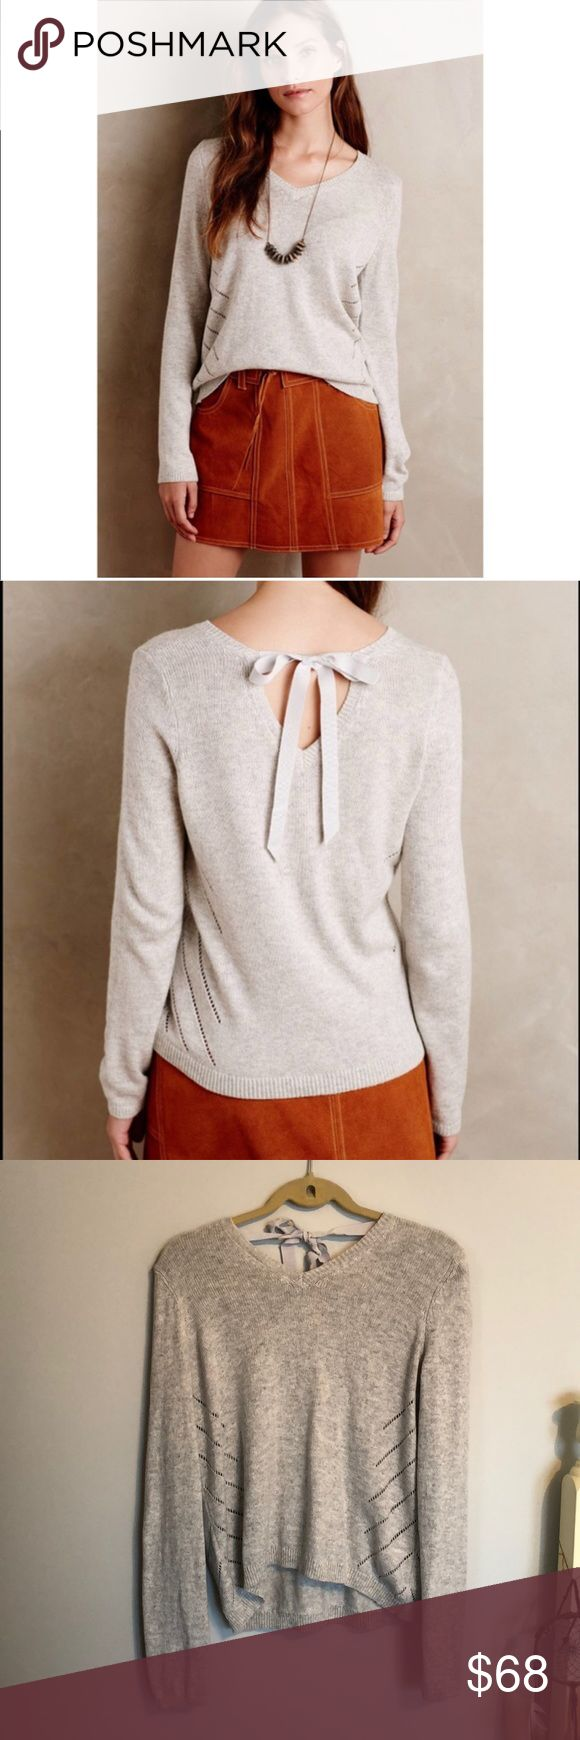 Anthropologie 🌼 Tie Back Pull-Over by Moth Anthropologie 🌼 Tie Back Pull-Over by Moth - AMAZING condition - this sweater is the exact color in the stock imagery, my camera has poor lighting! This sweater is soft and cozy, perfect for those fall/winter days! NO TRADES Anthropologie Sweaters